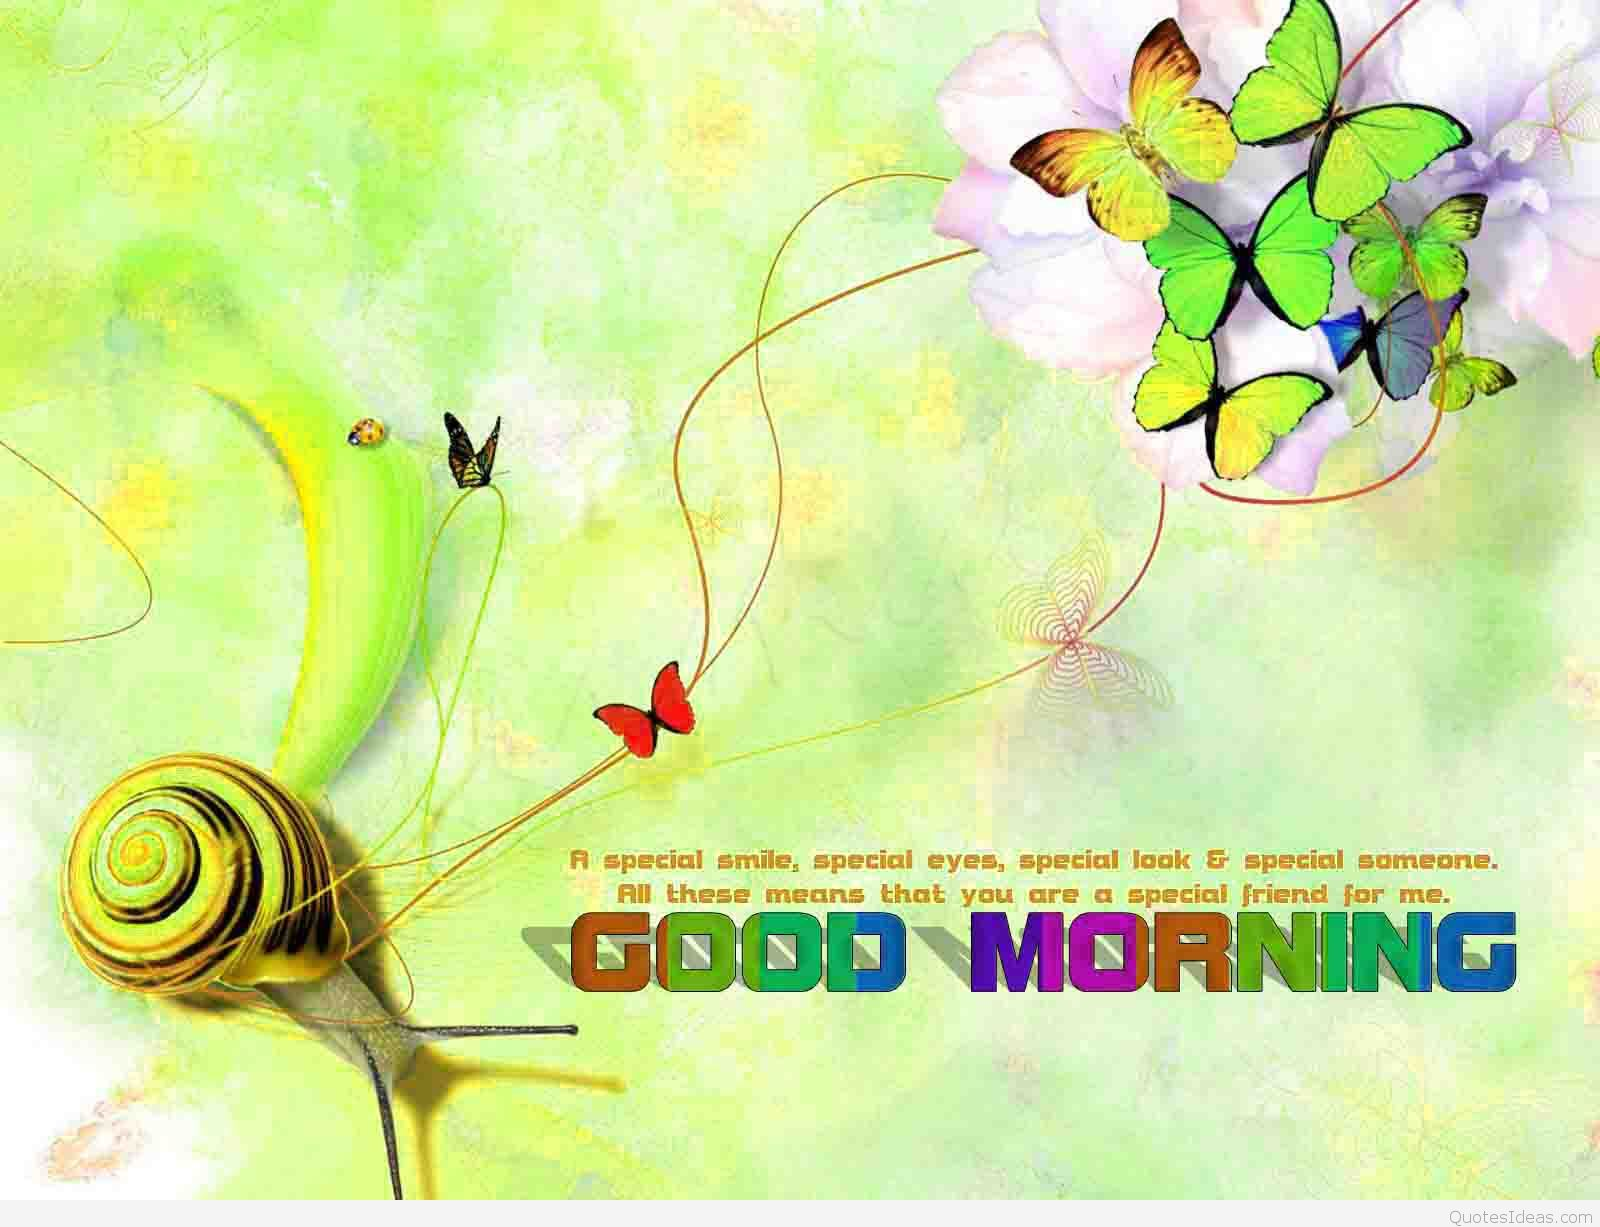 Lovely And Beautiful Good Morning Wallpapers Image Wallpapers 1600x1227